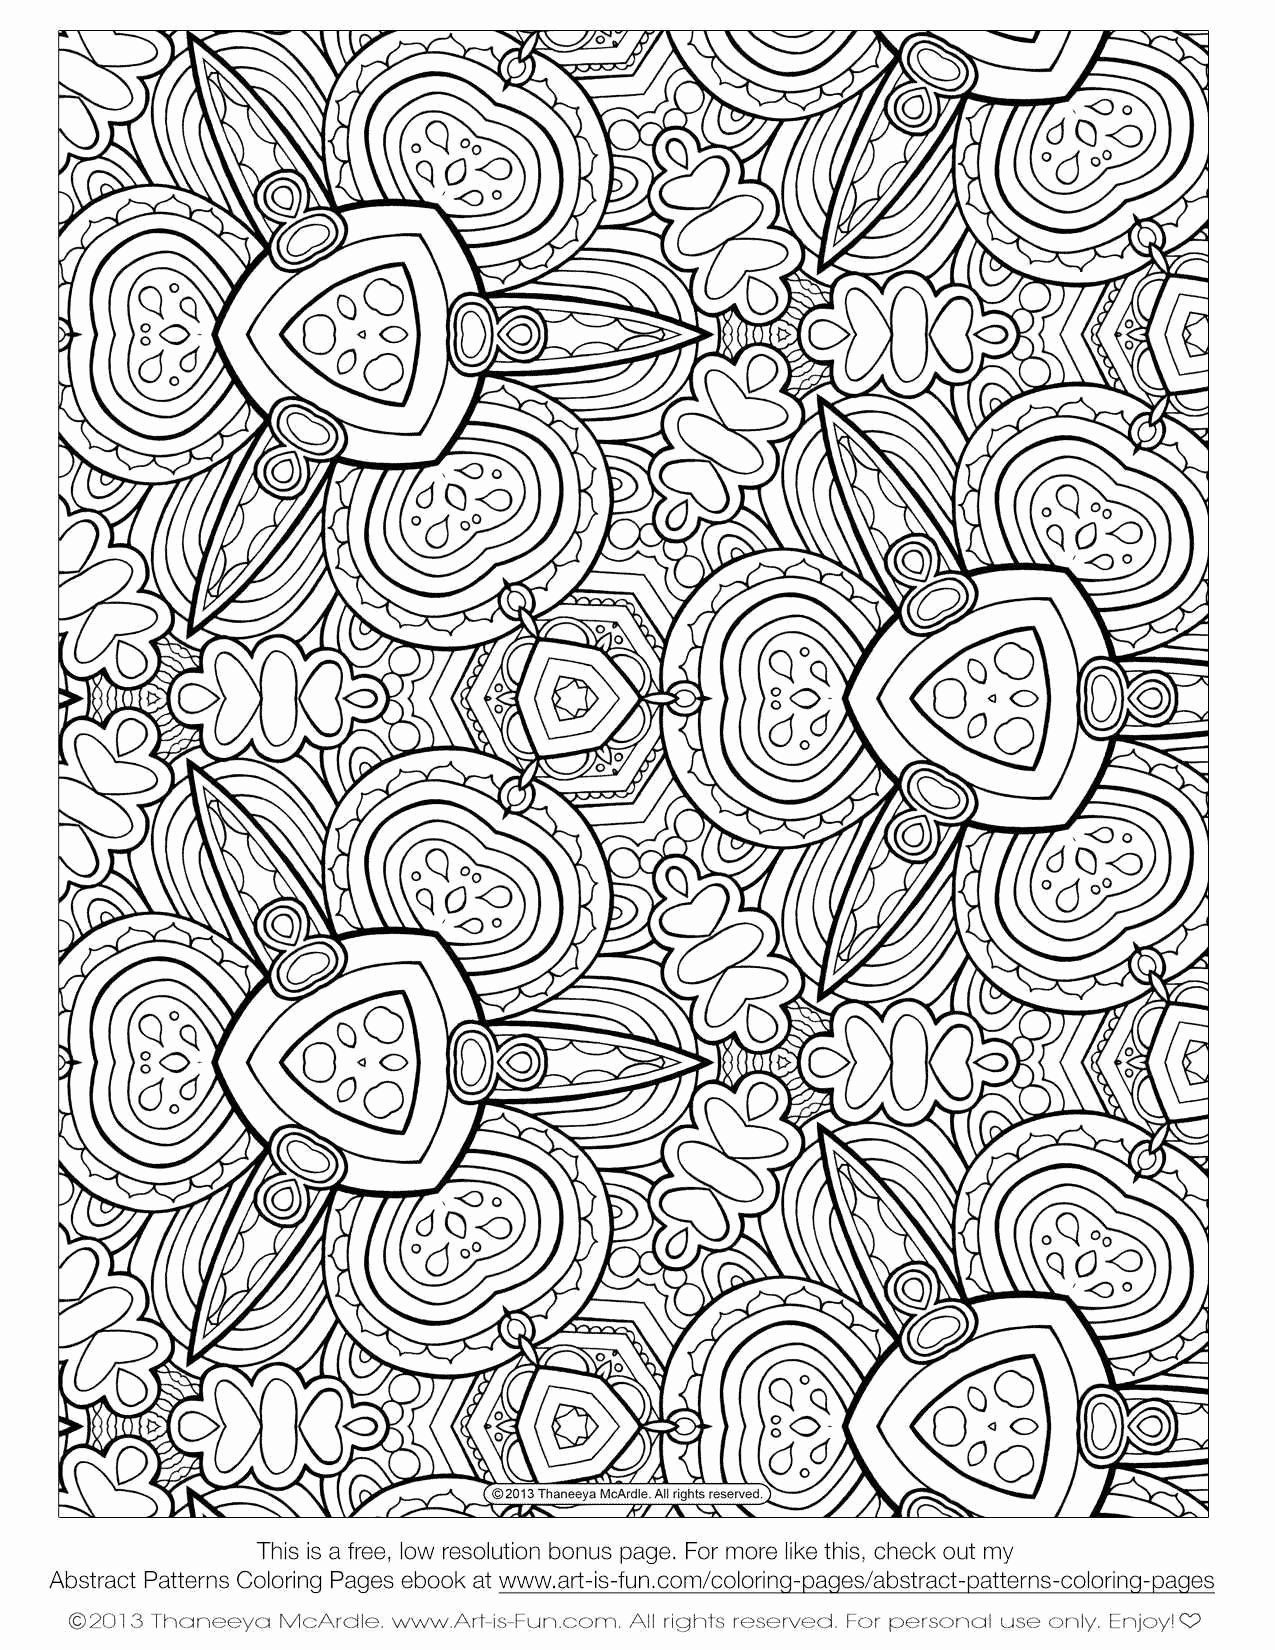 Coloring Pages Games Free Online Lovely Coloring Pages 40 Awesome